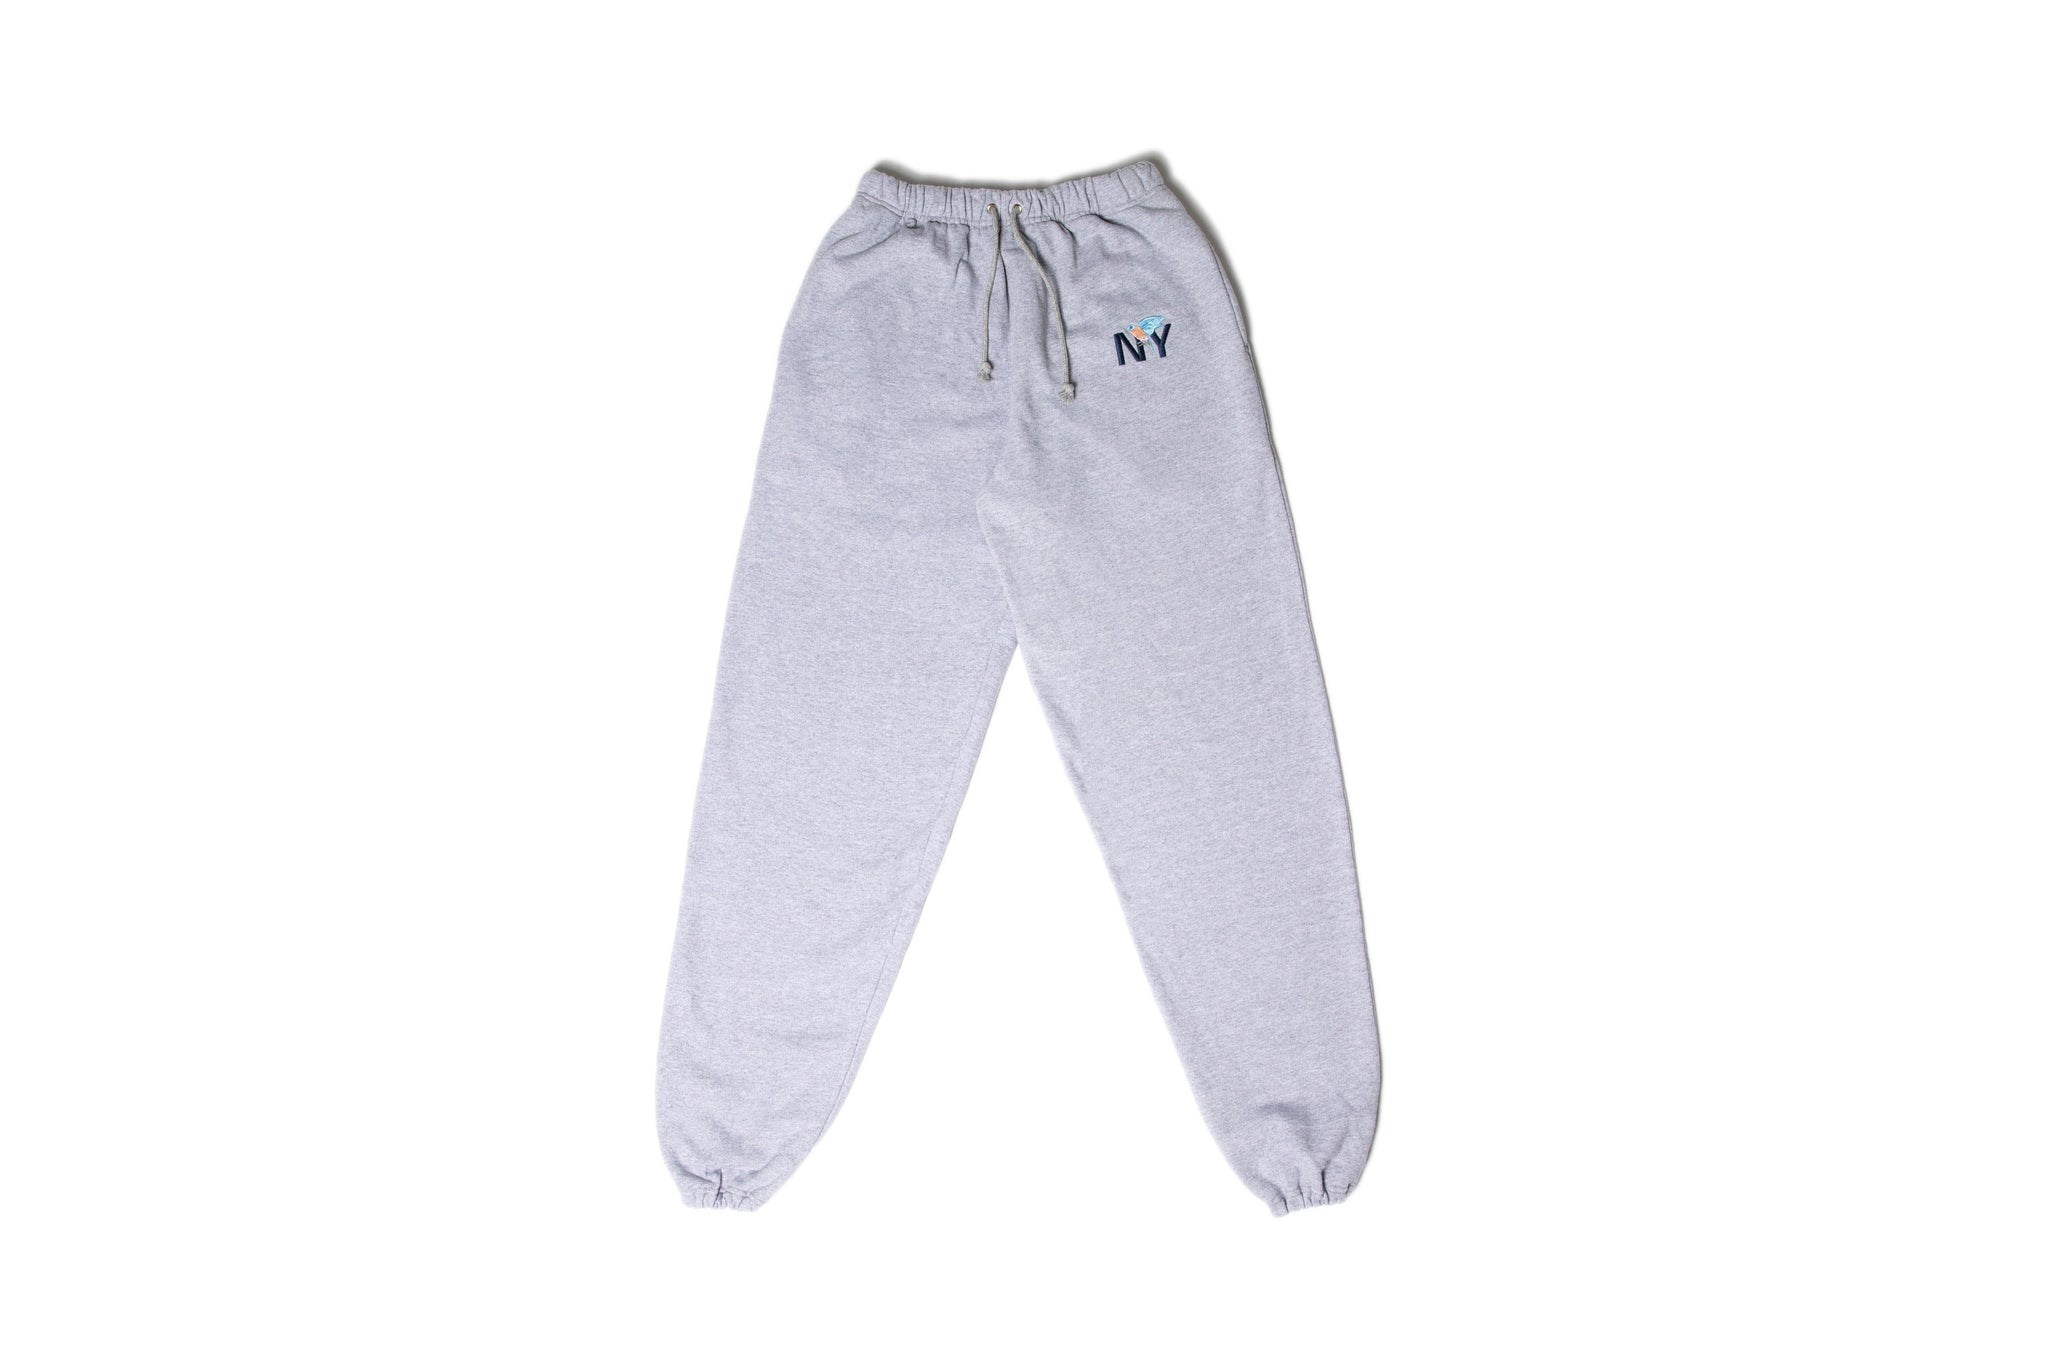 Highsnobiety NY Sweatpants